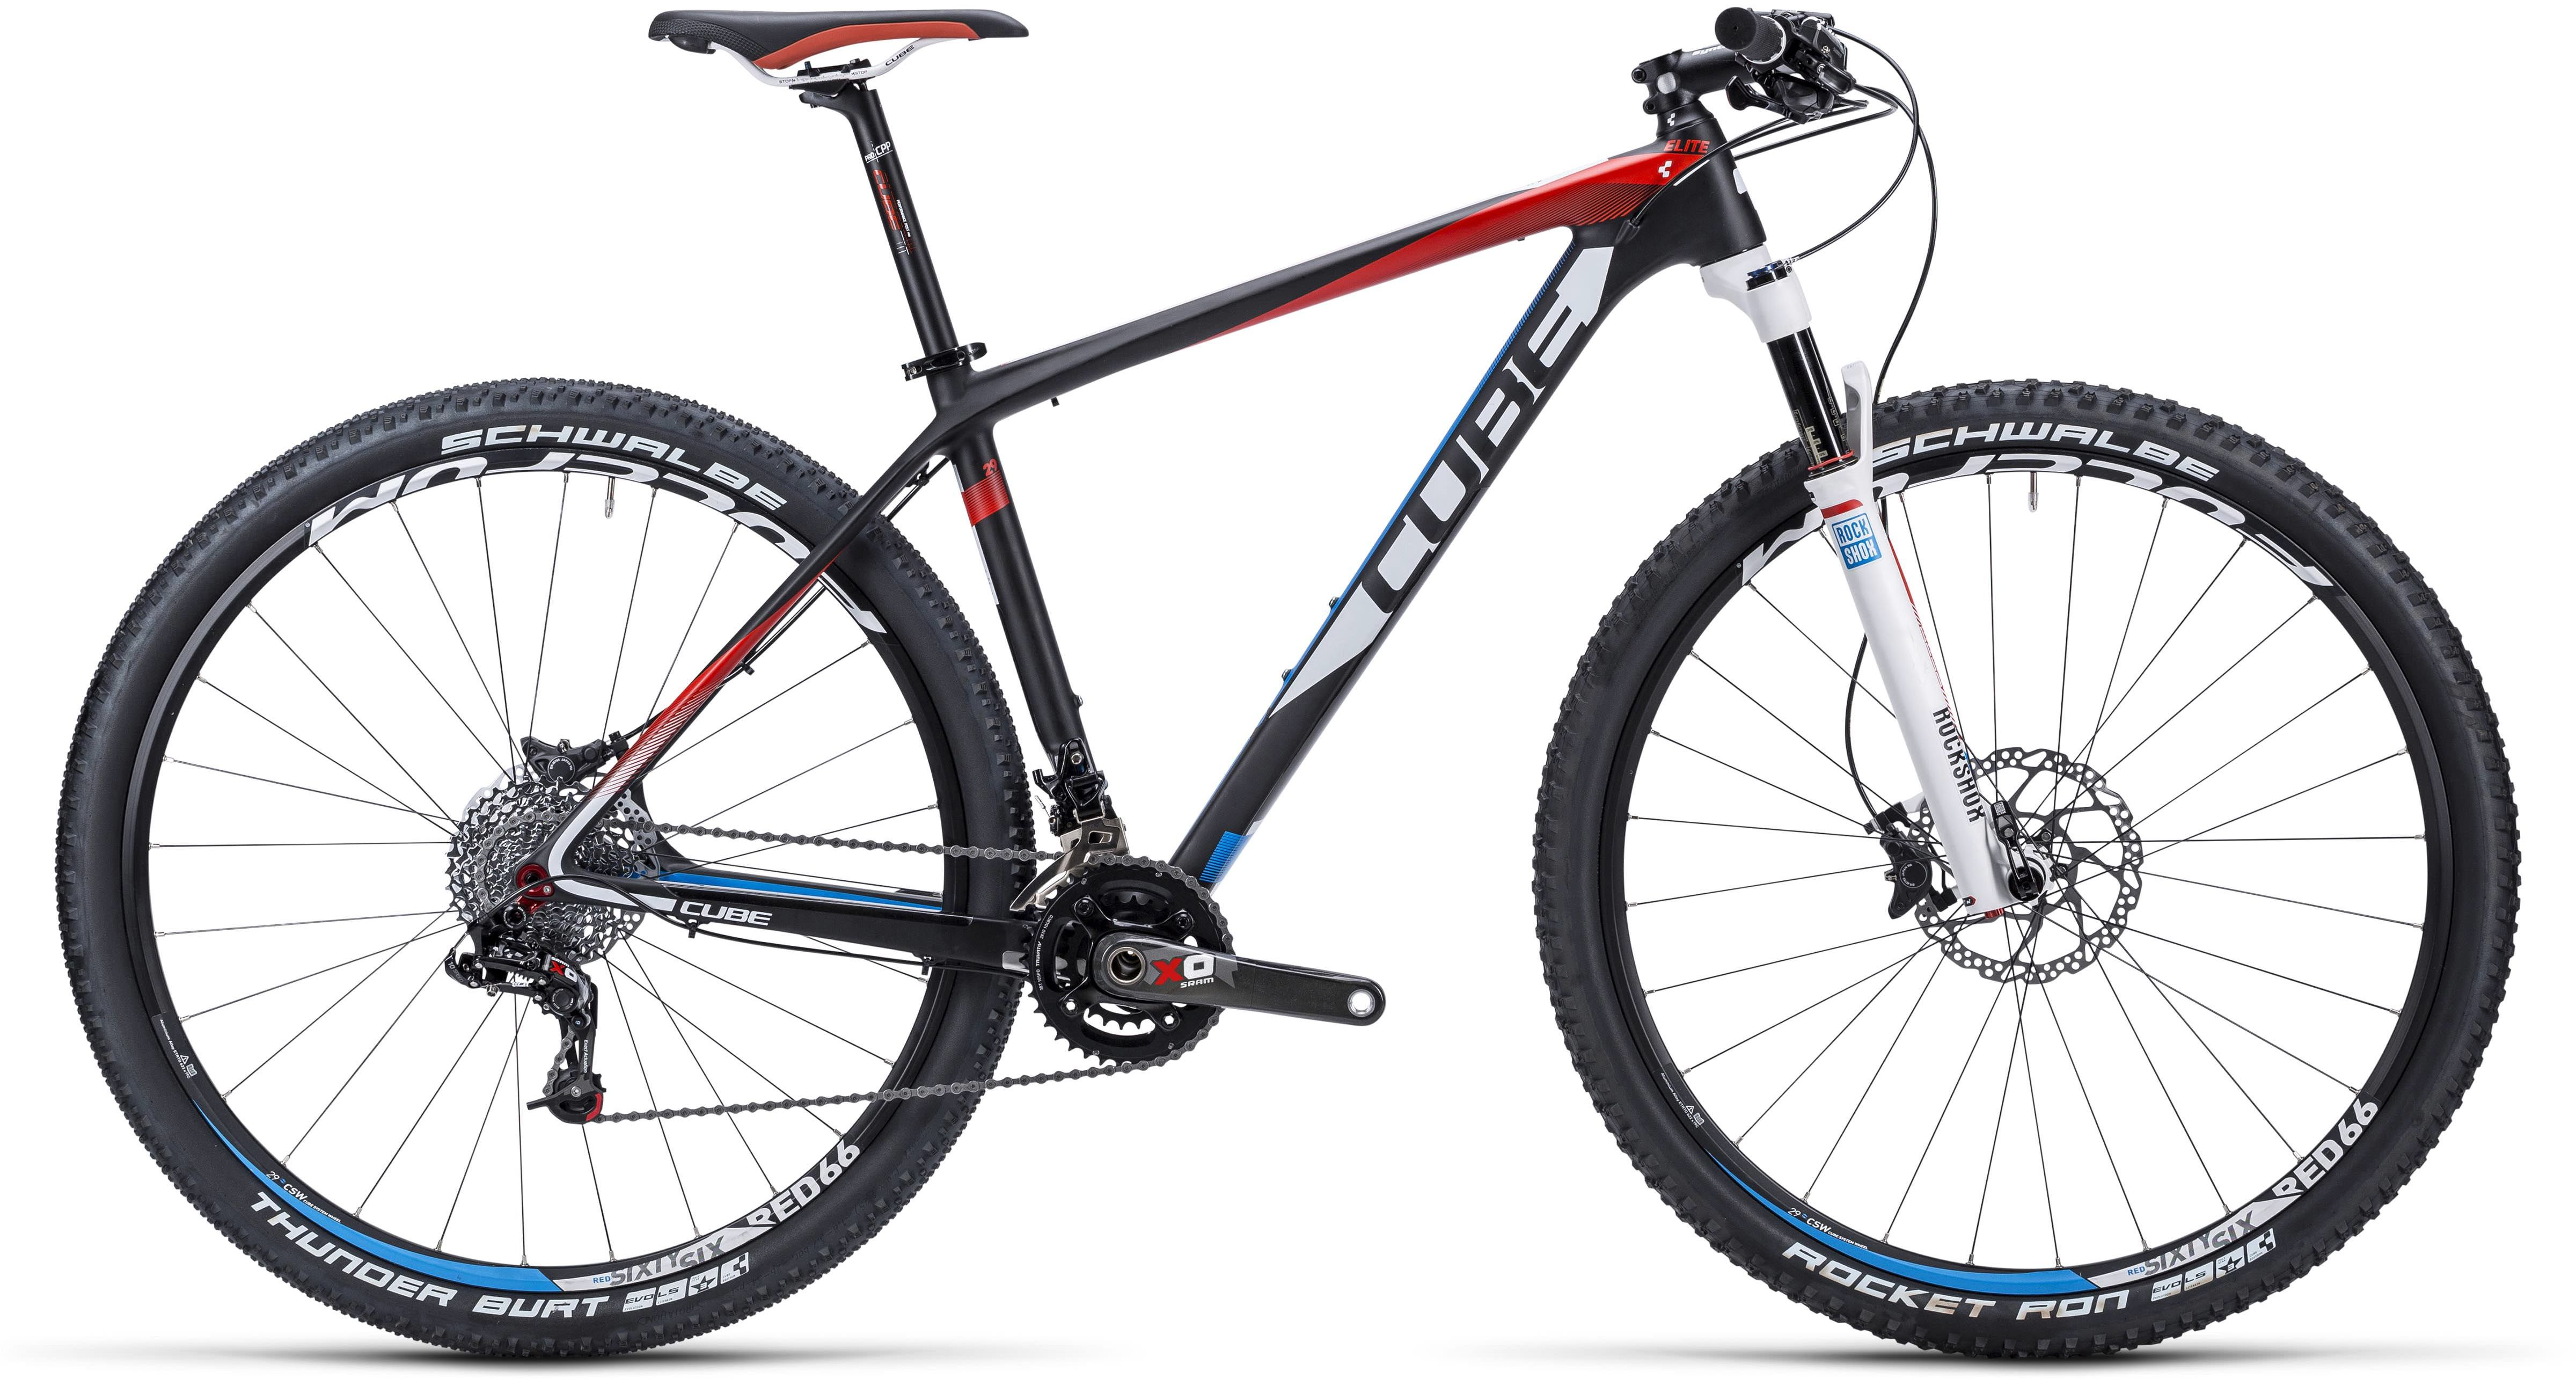 Cube Elite Super Hpc Pro 29 Review